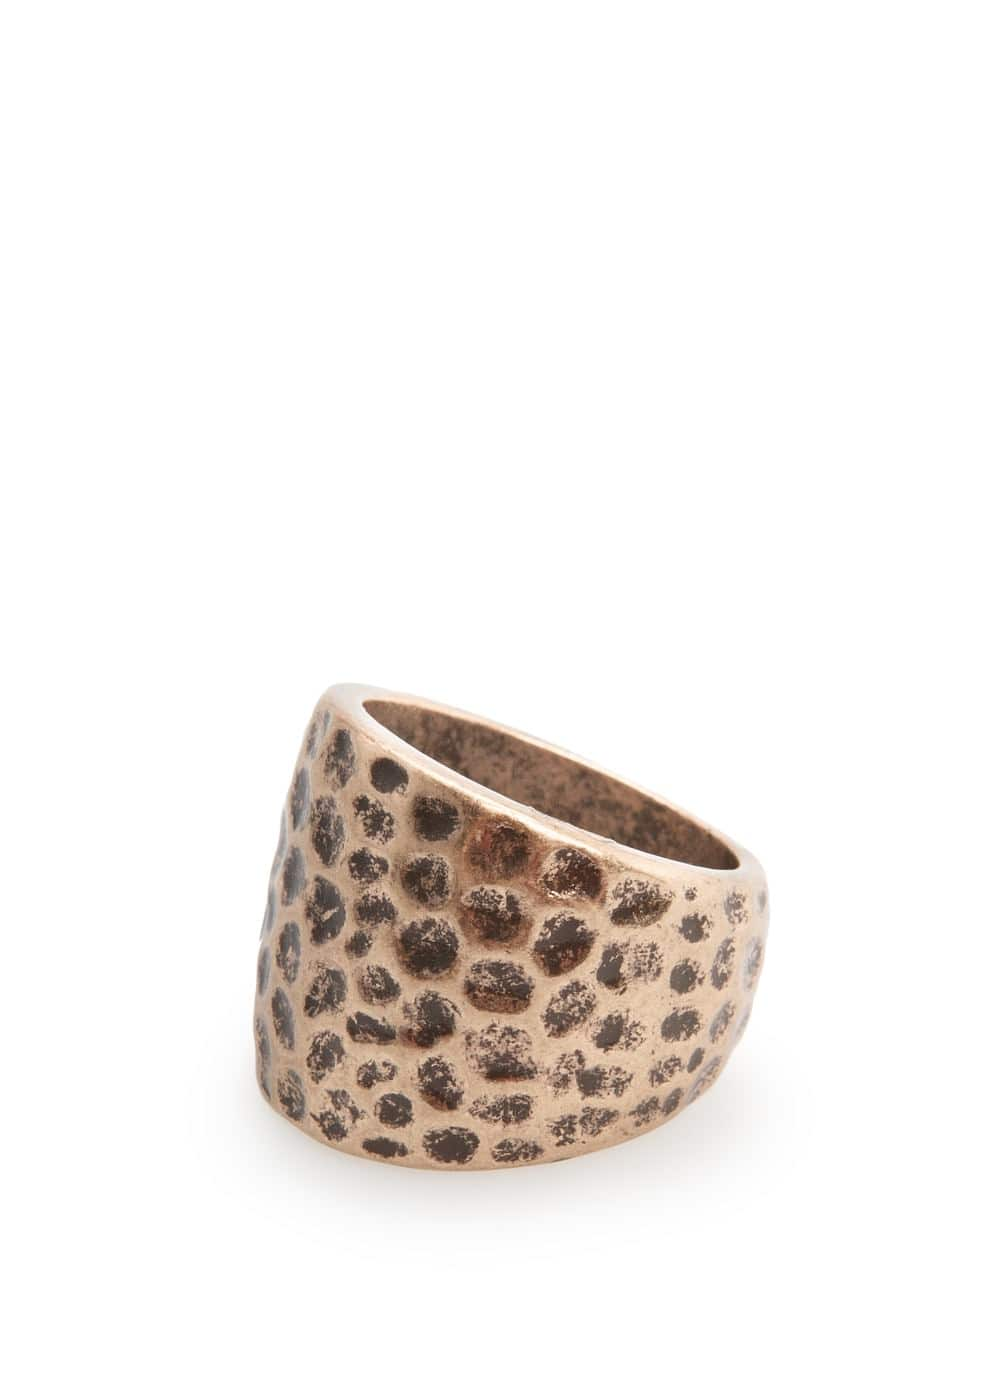 Embossed metal ring